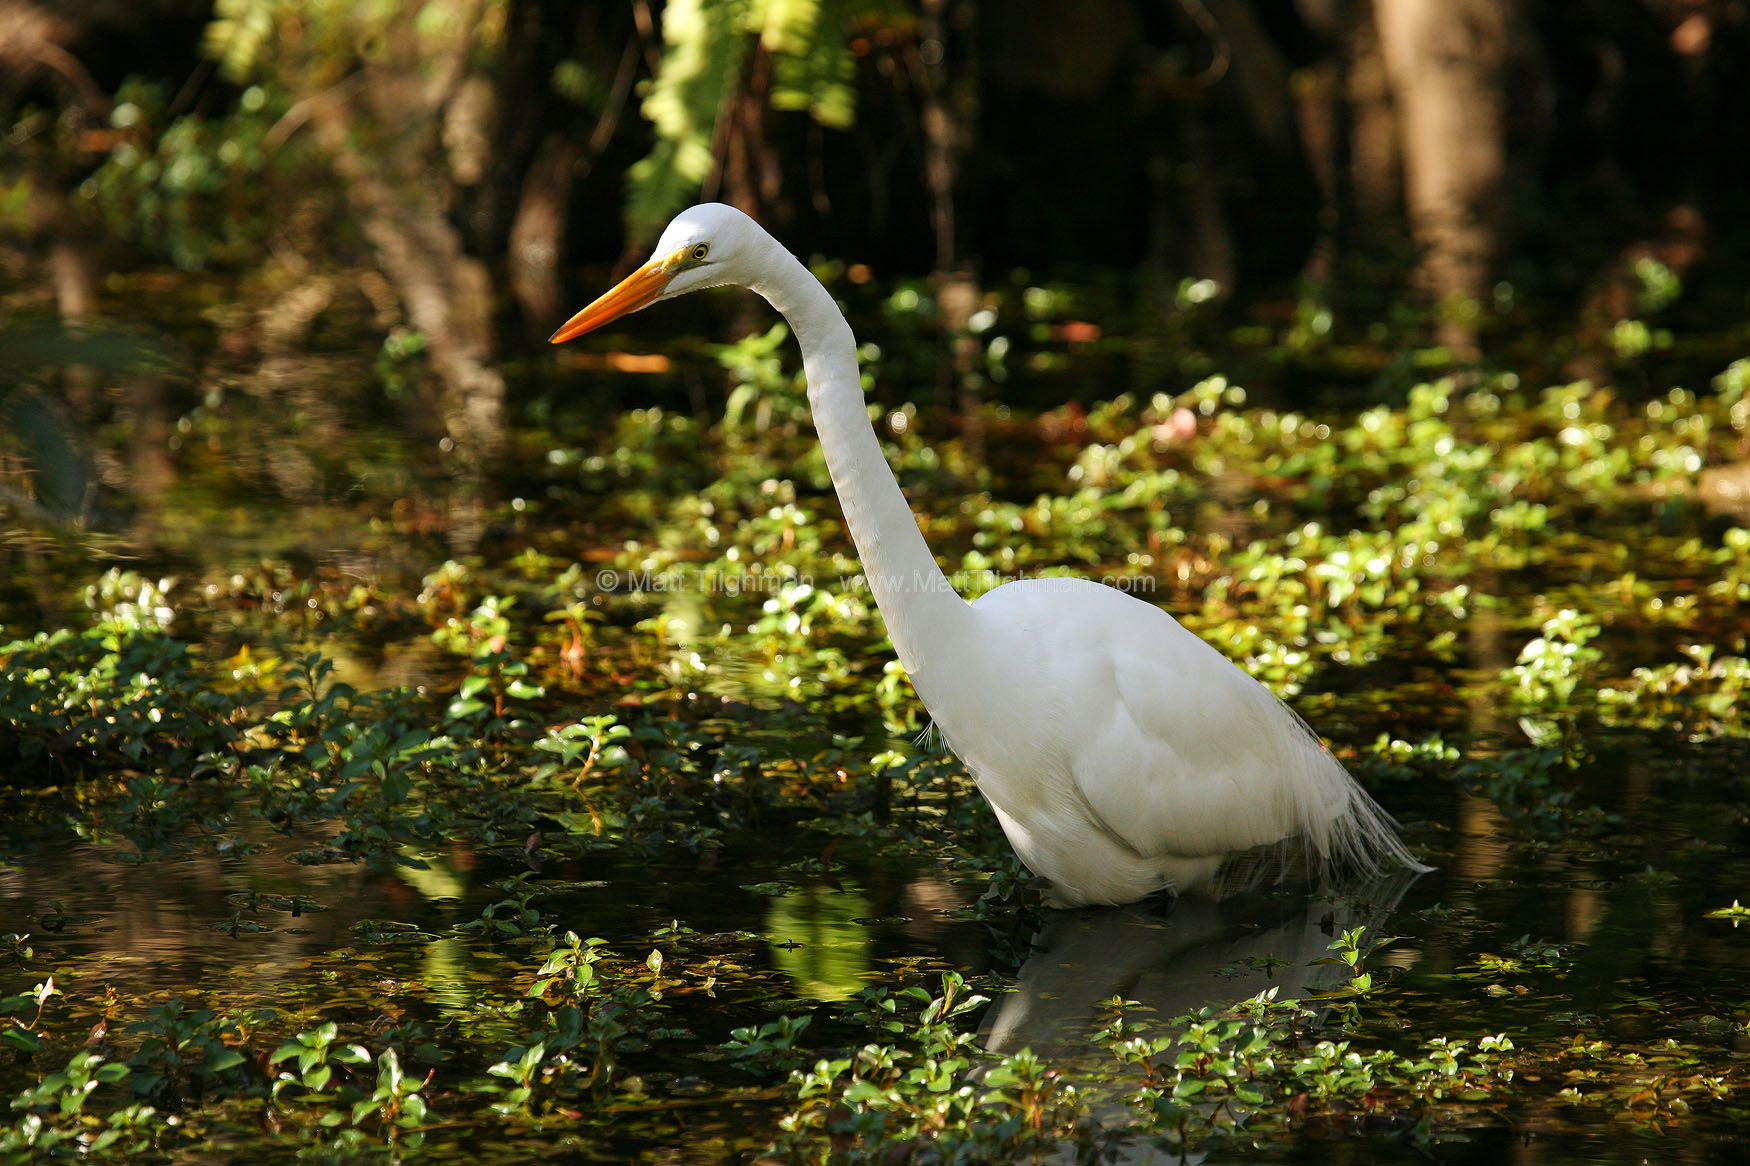 Fine art stock nature photograph of a Great Egret wading through the Florida Everglades.